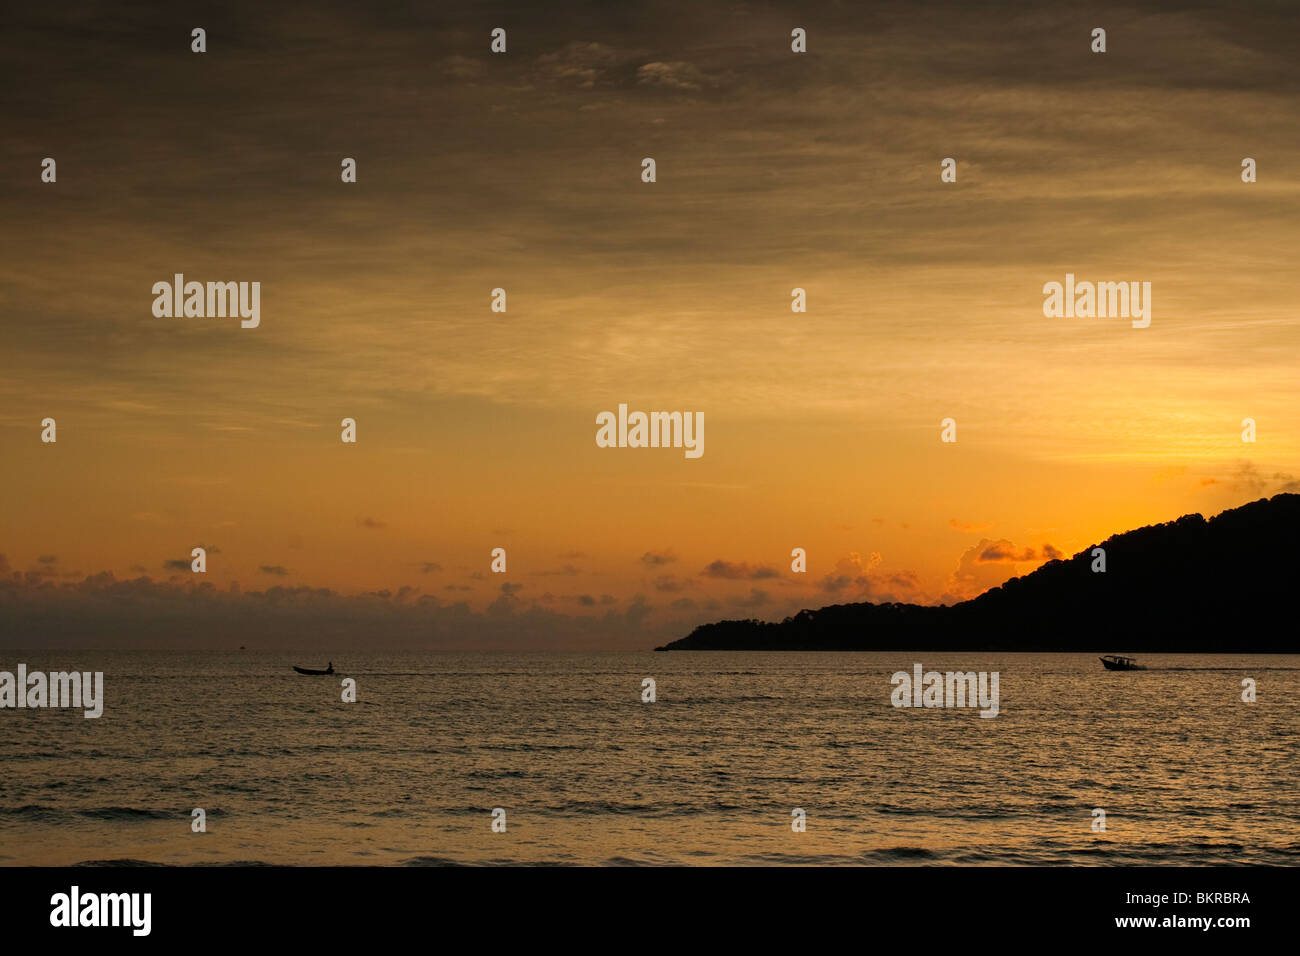 Dawn over the South China sea and the island of Pehentian Besar, seen from Long Beach in Perhentian Kecil. - Stock Image